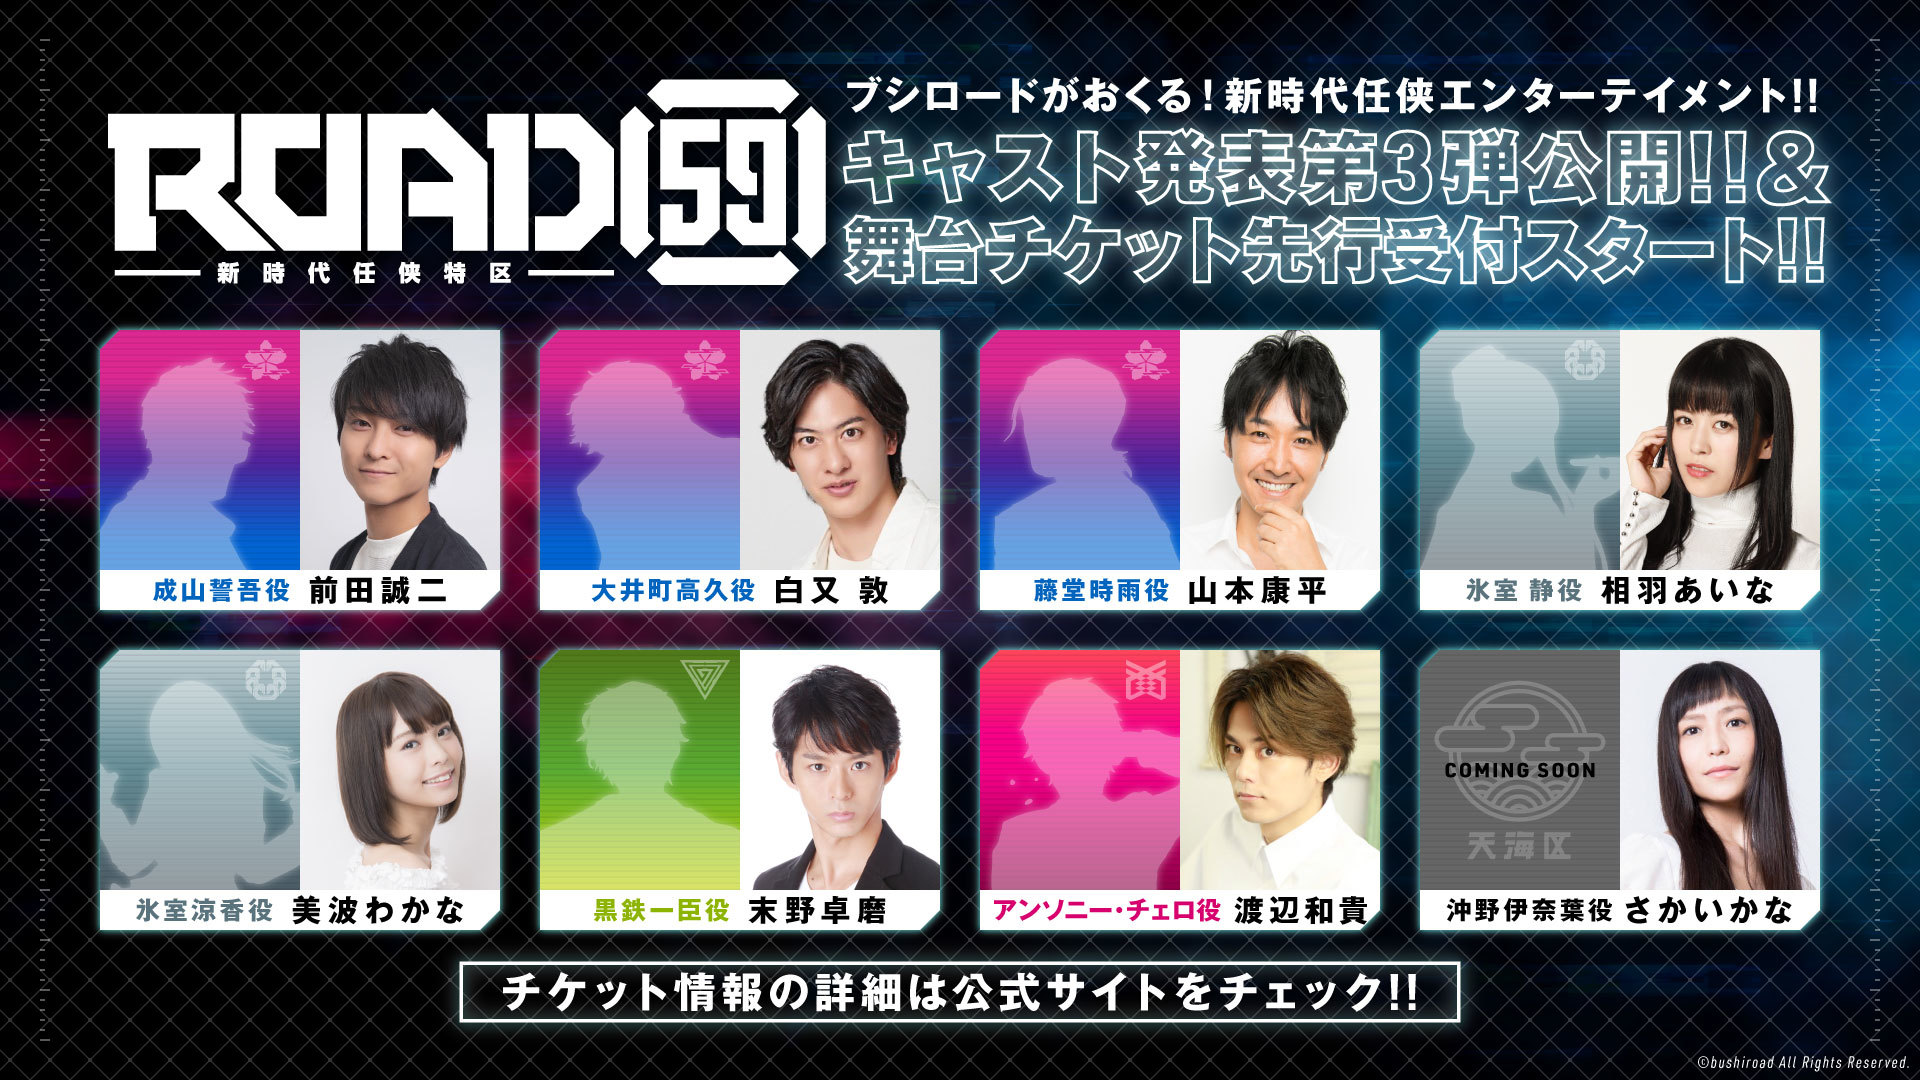 「ROAD59 -新時代任侠特区-」のキャスト情報第3弾 (C)bushiroad All Rights Reserved.